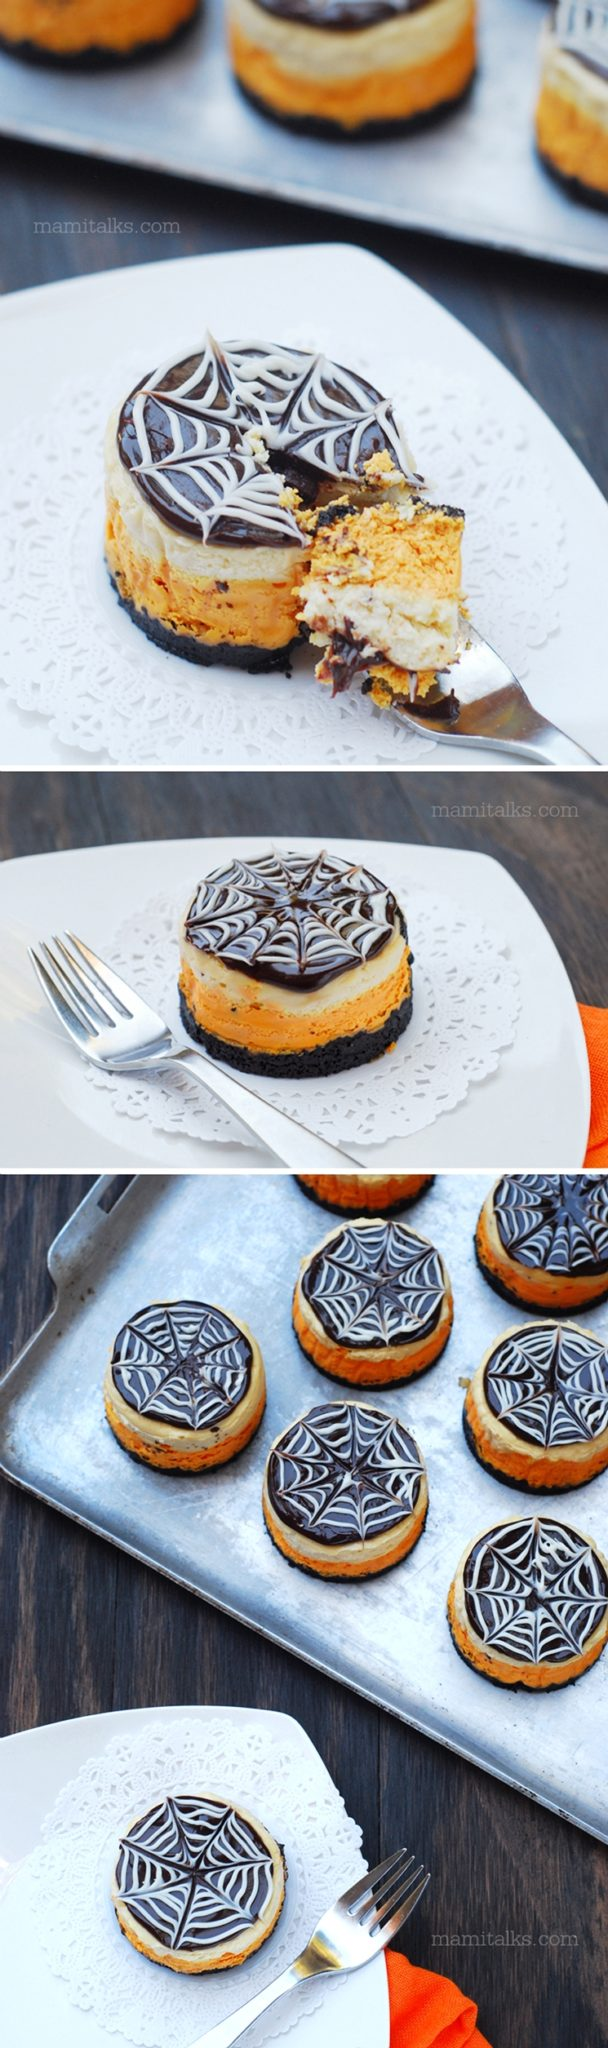 Halloween Mini Cheesecakes with spider webs -MamiTalks.com